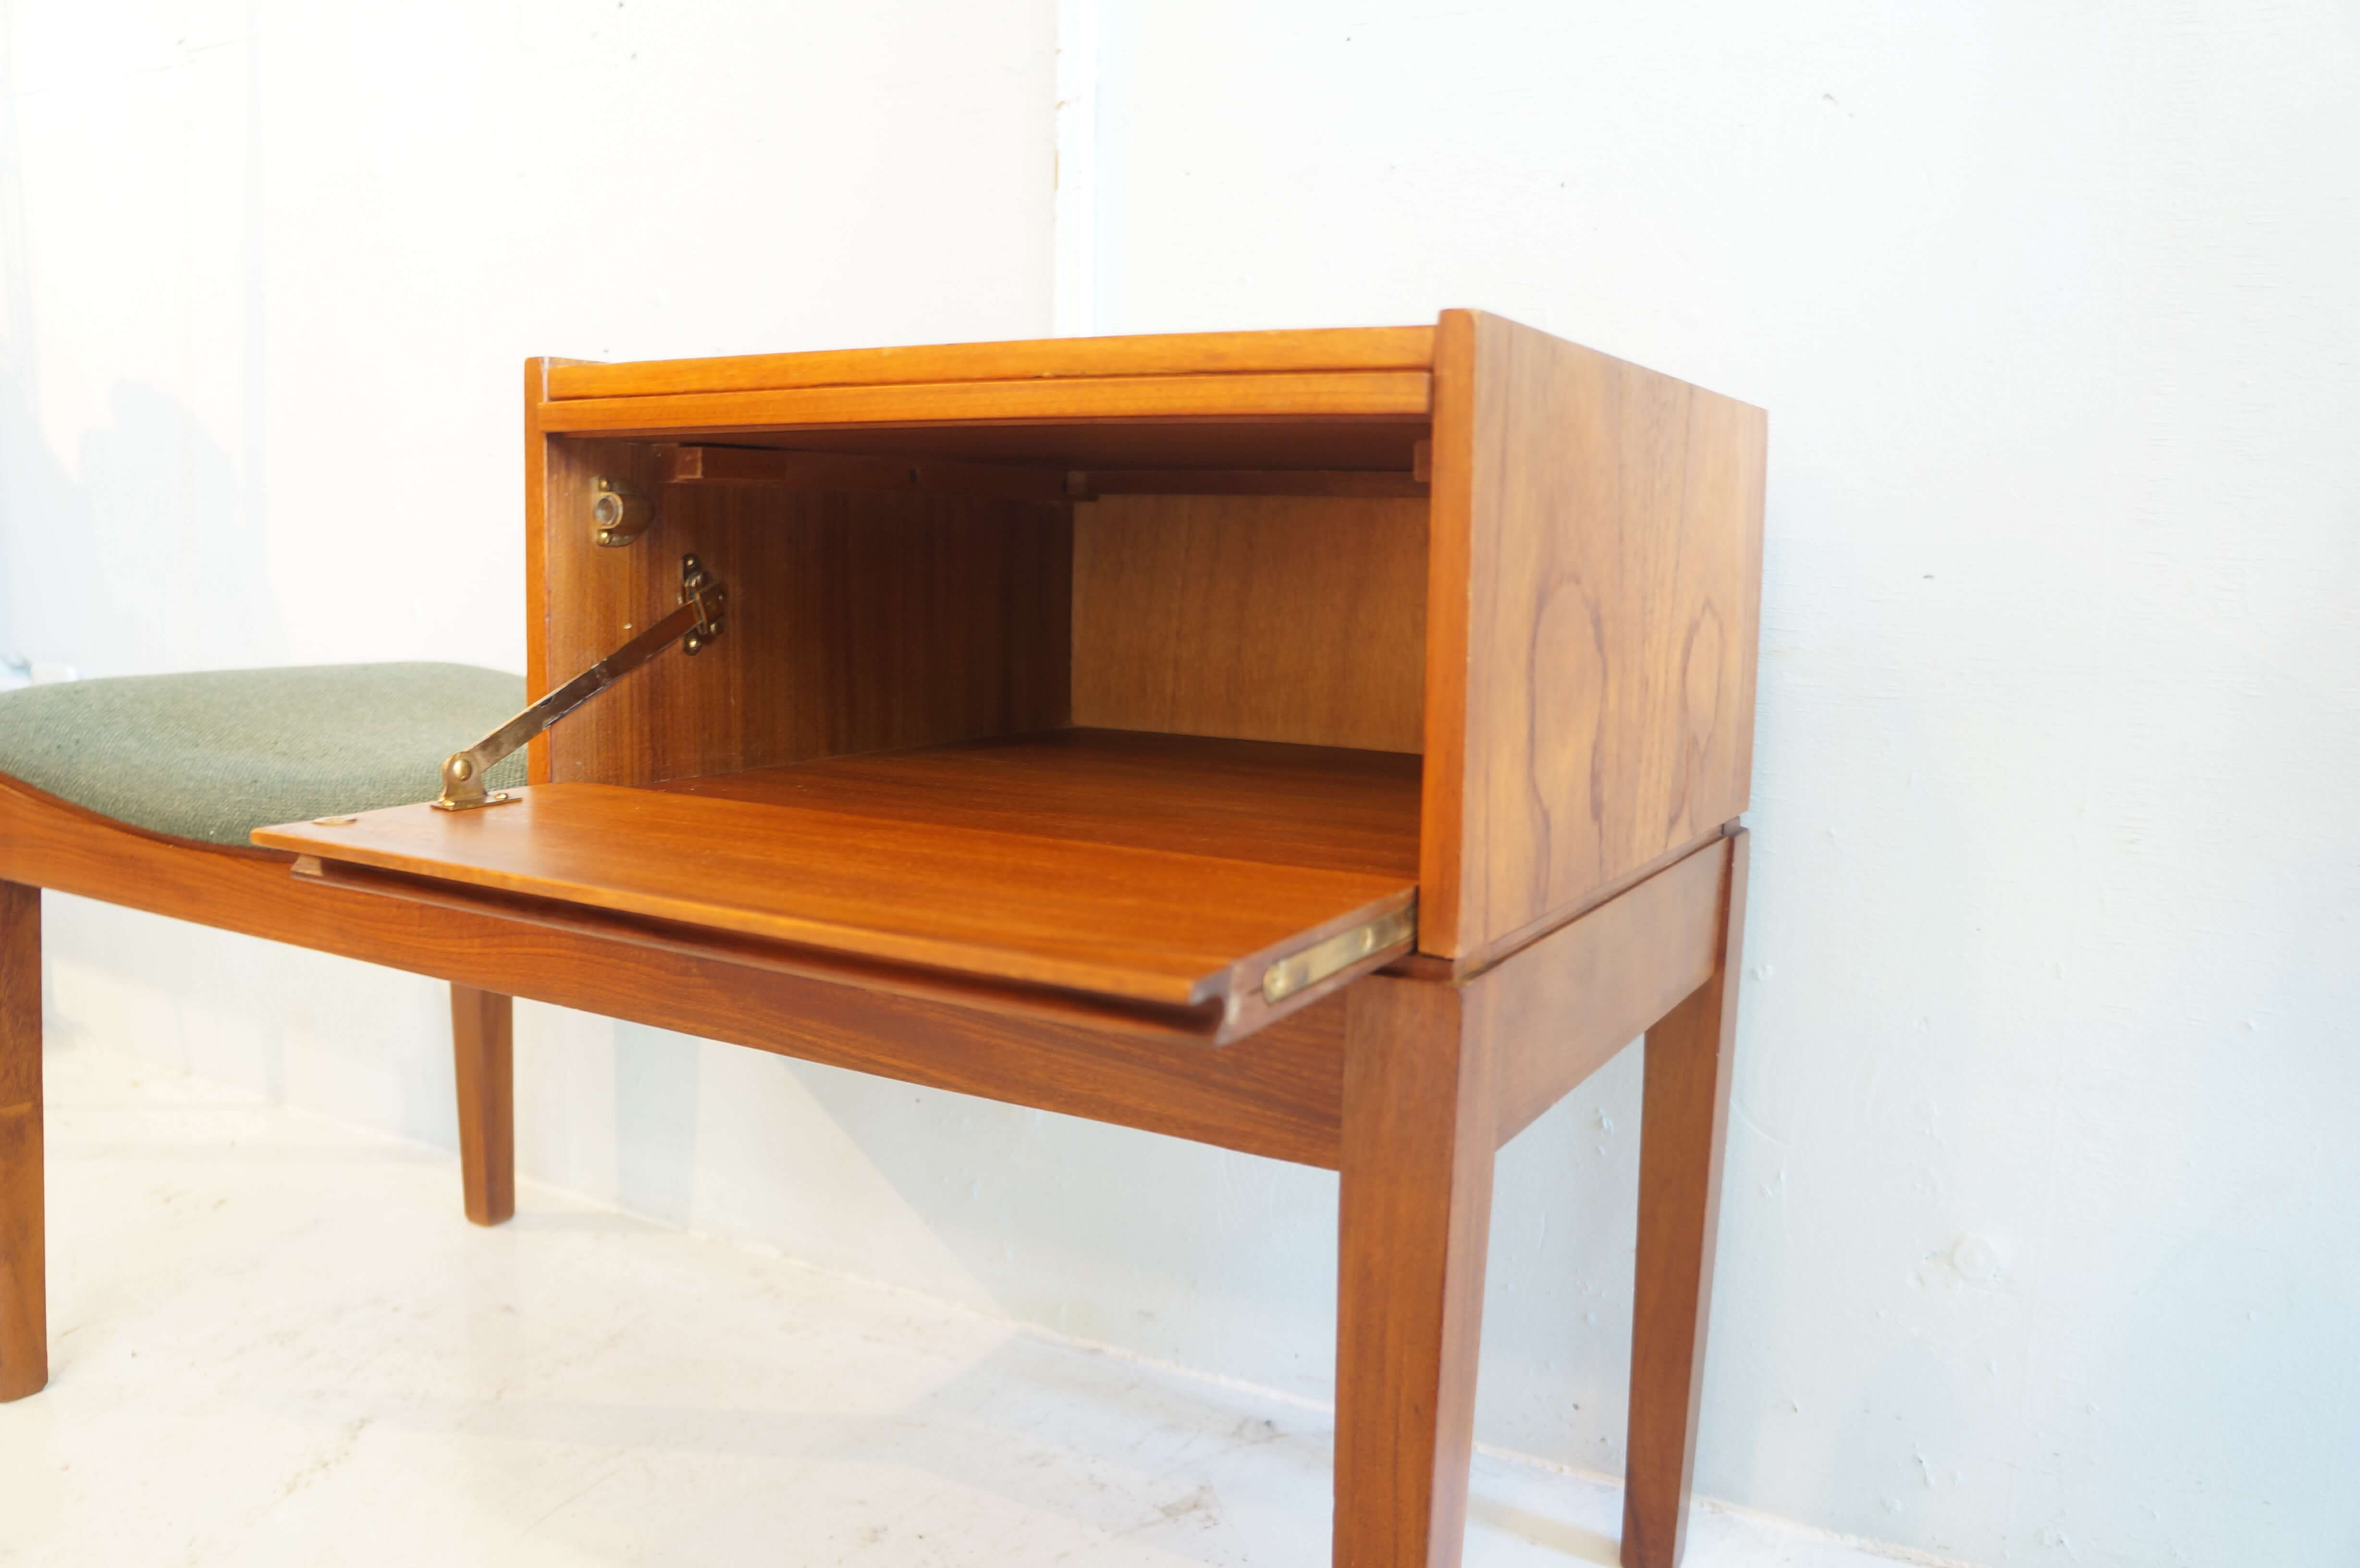 UK VINTAGE ERCOL TEAK WOOD TELEPHONE TABLE MADE by CHIPPY / イギリス ヴィンテージ アーコール チーク材 テレフォンベンチ チッピー社製造